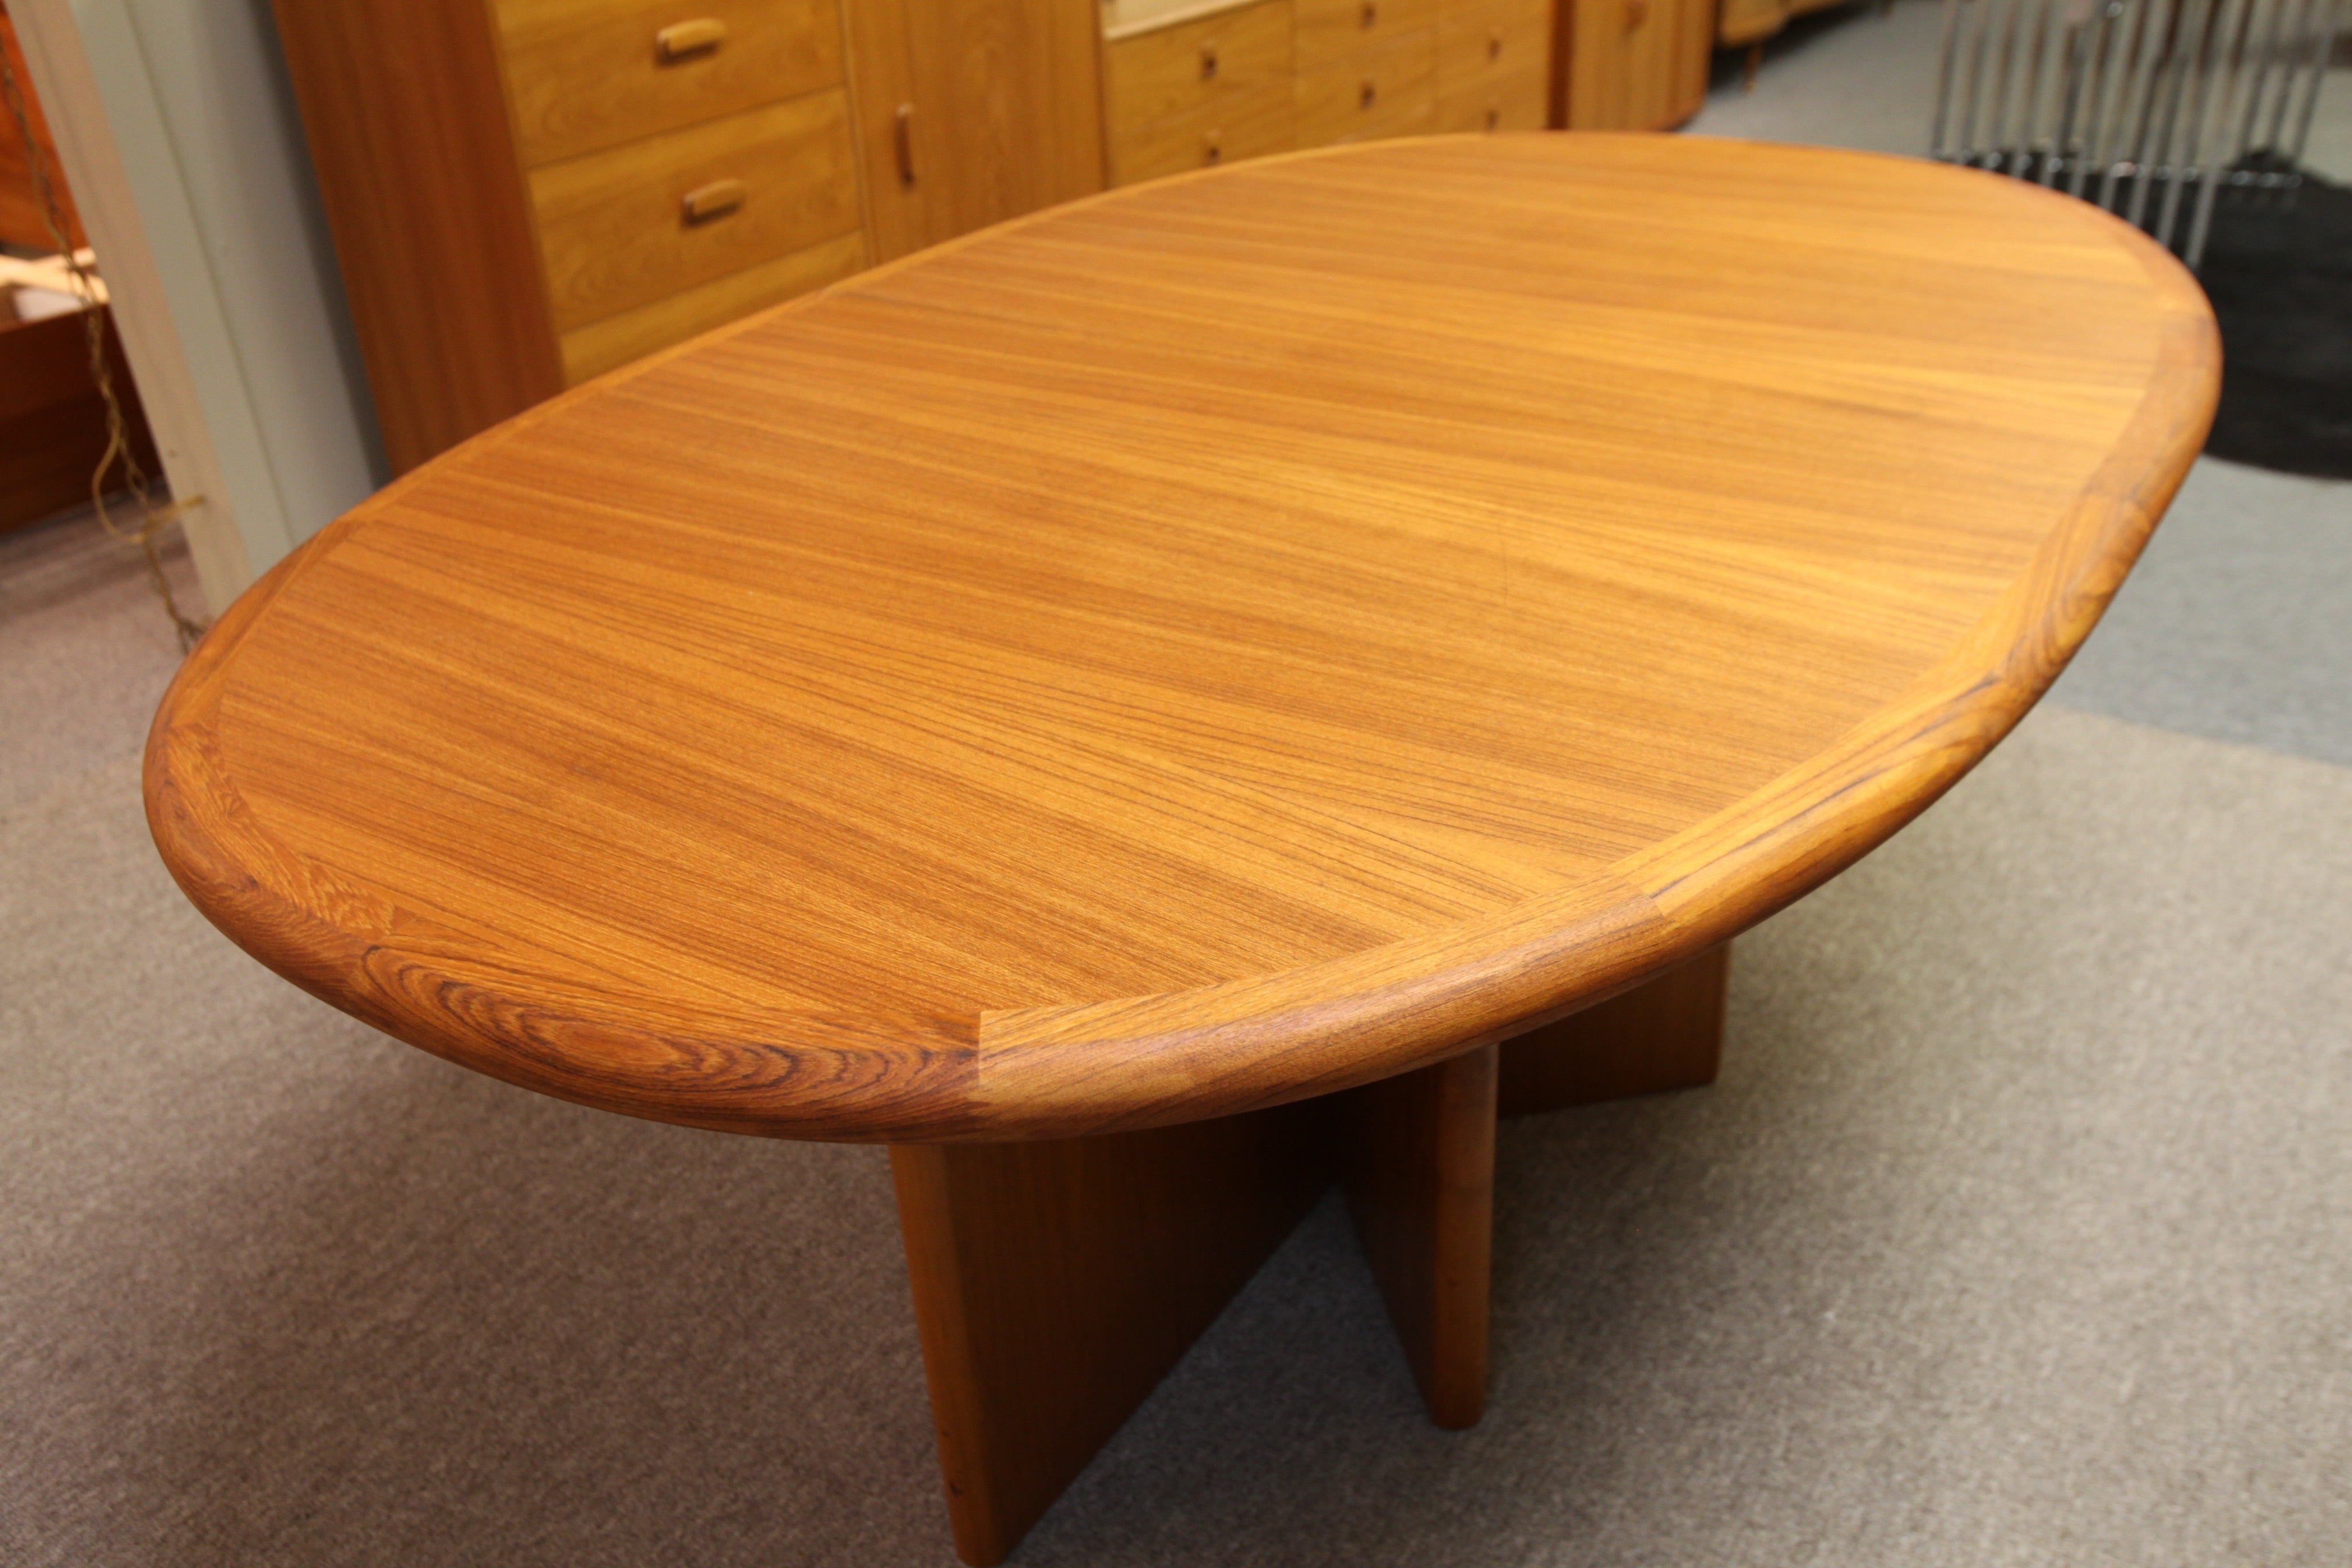 "Ansager Mobiler Danish Teak Table w/ 2 Leafs (45"" x 110"") (45"" x 70.5"")"